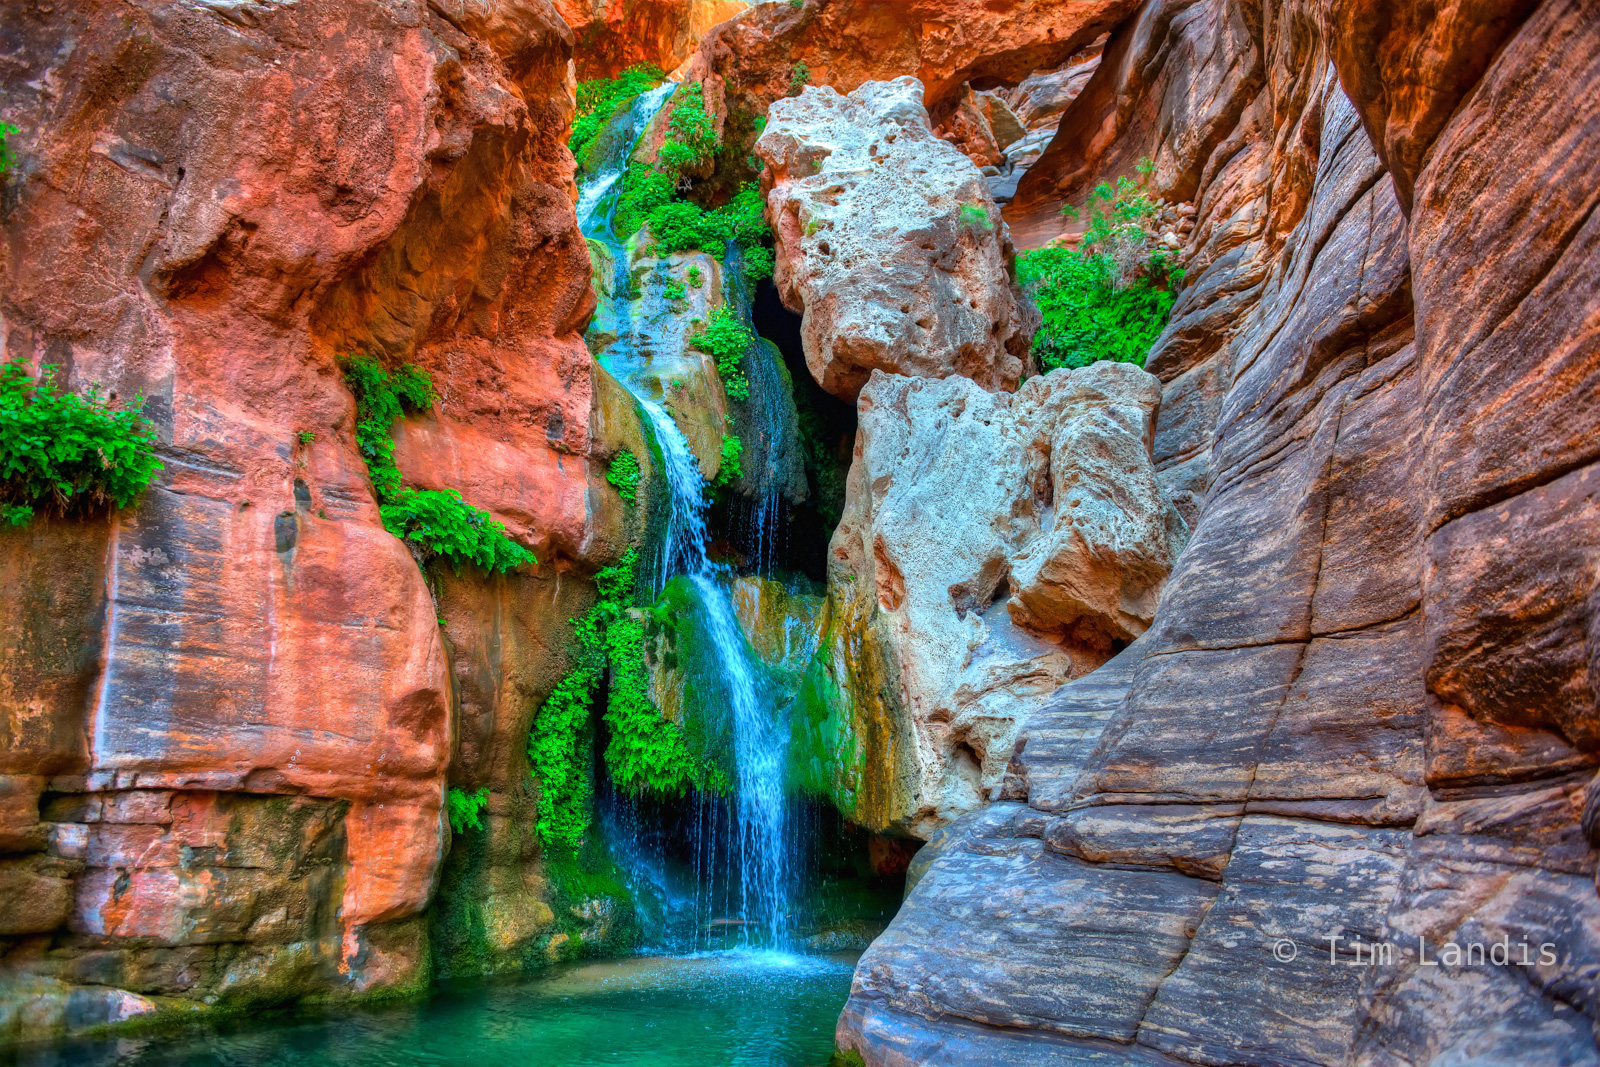 Colorado River, Elves Chasm, Grand Canyon NP, Western Rivers, ferns, maiden hair ferns, rafting, waterfalls, photo